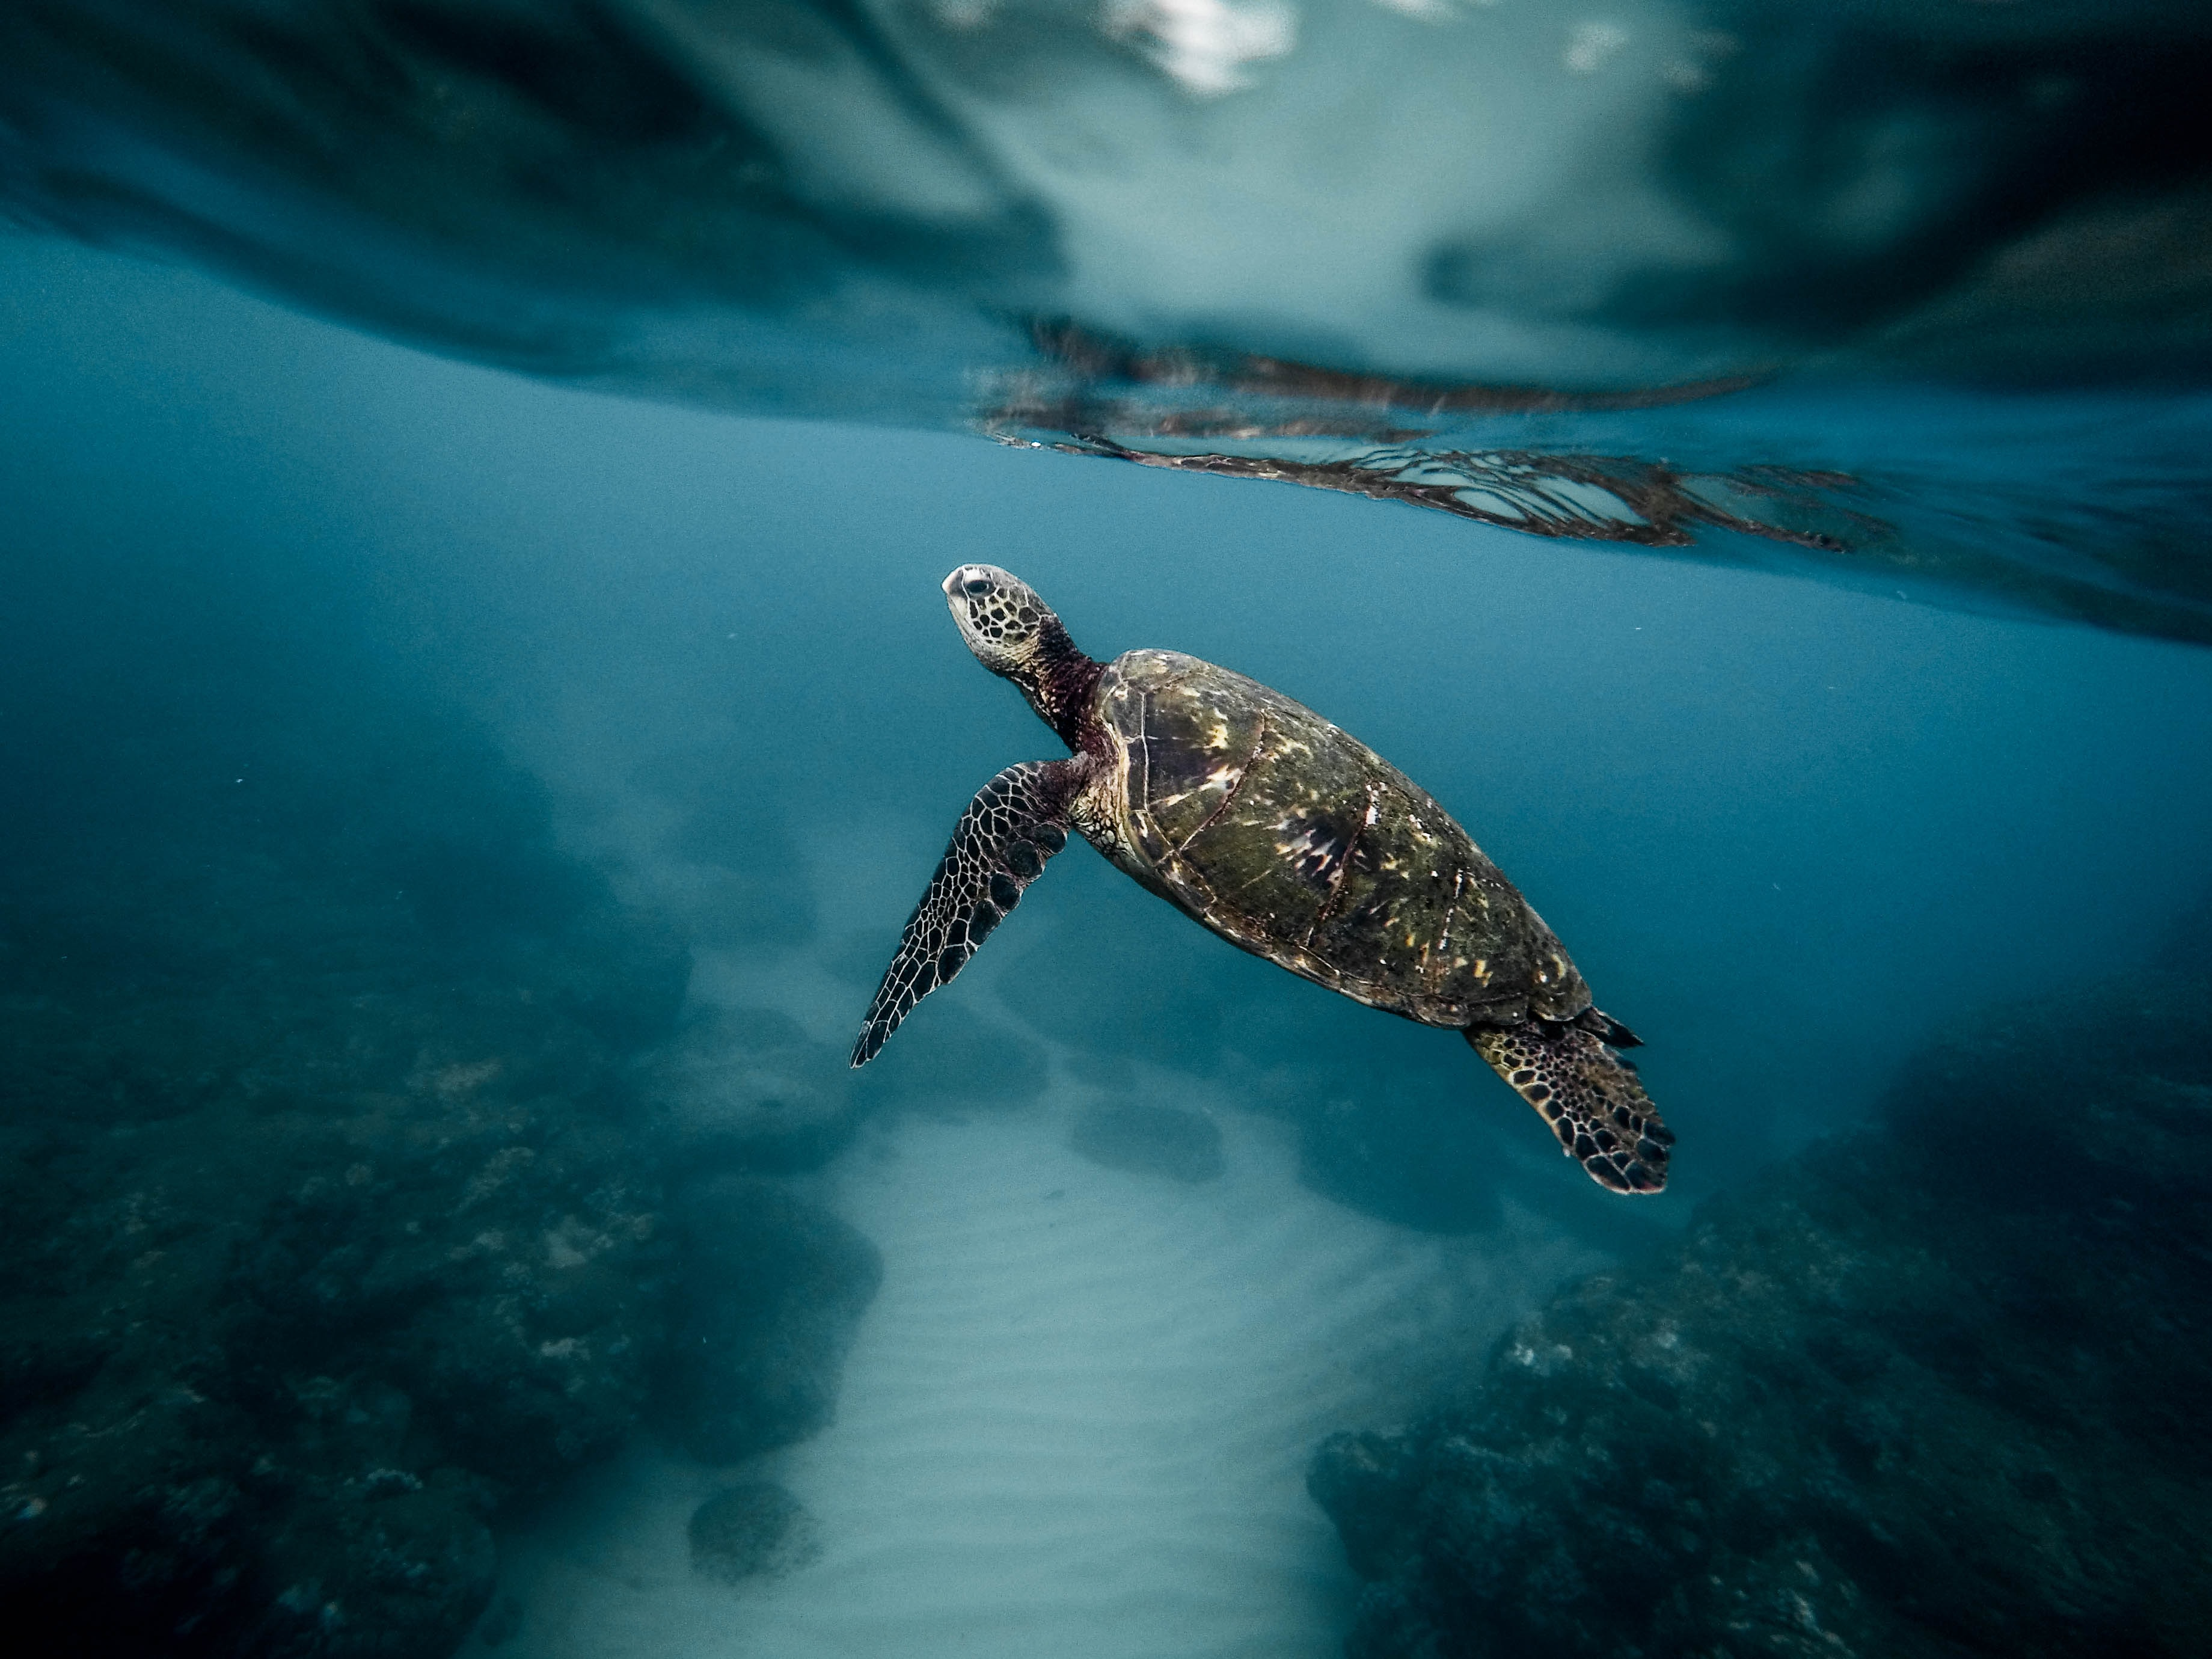 black turtle swimming on body of water